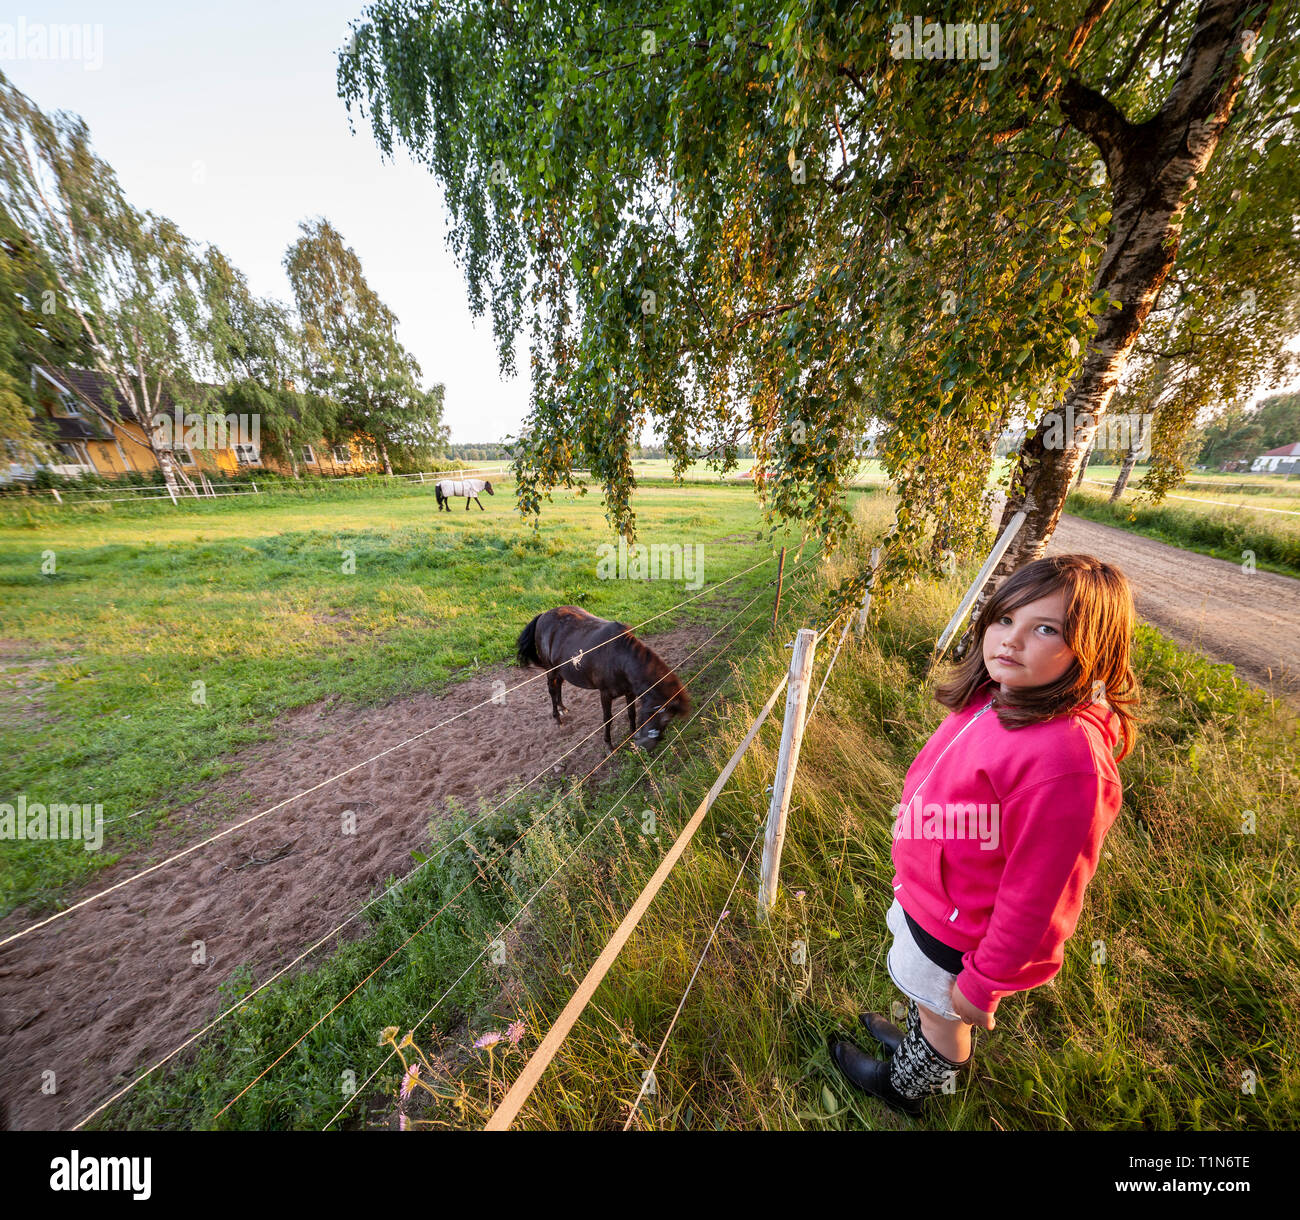 Girl and a horse. Dalarna / Dalecarlia, Sweden, Scandinavia. - Stock Image